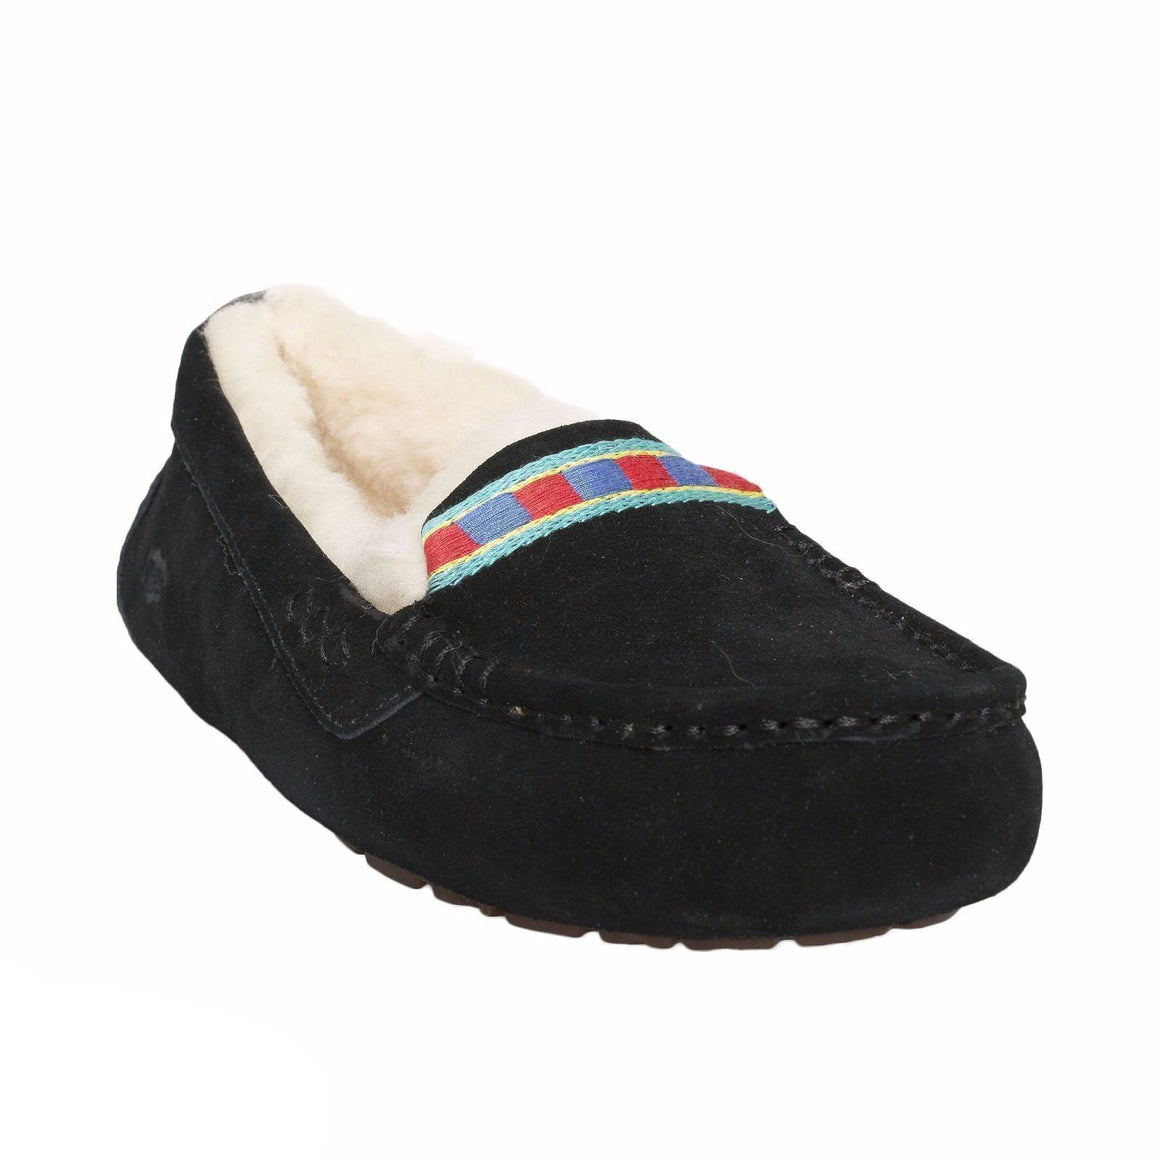 UGG Ansley Embroidery Black Slippers